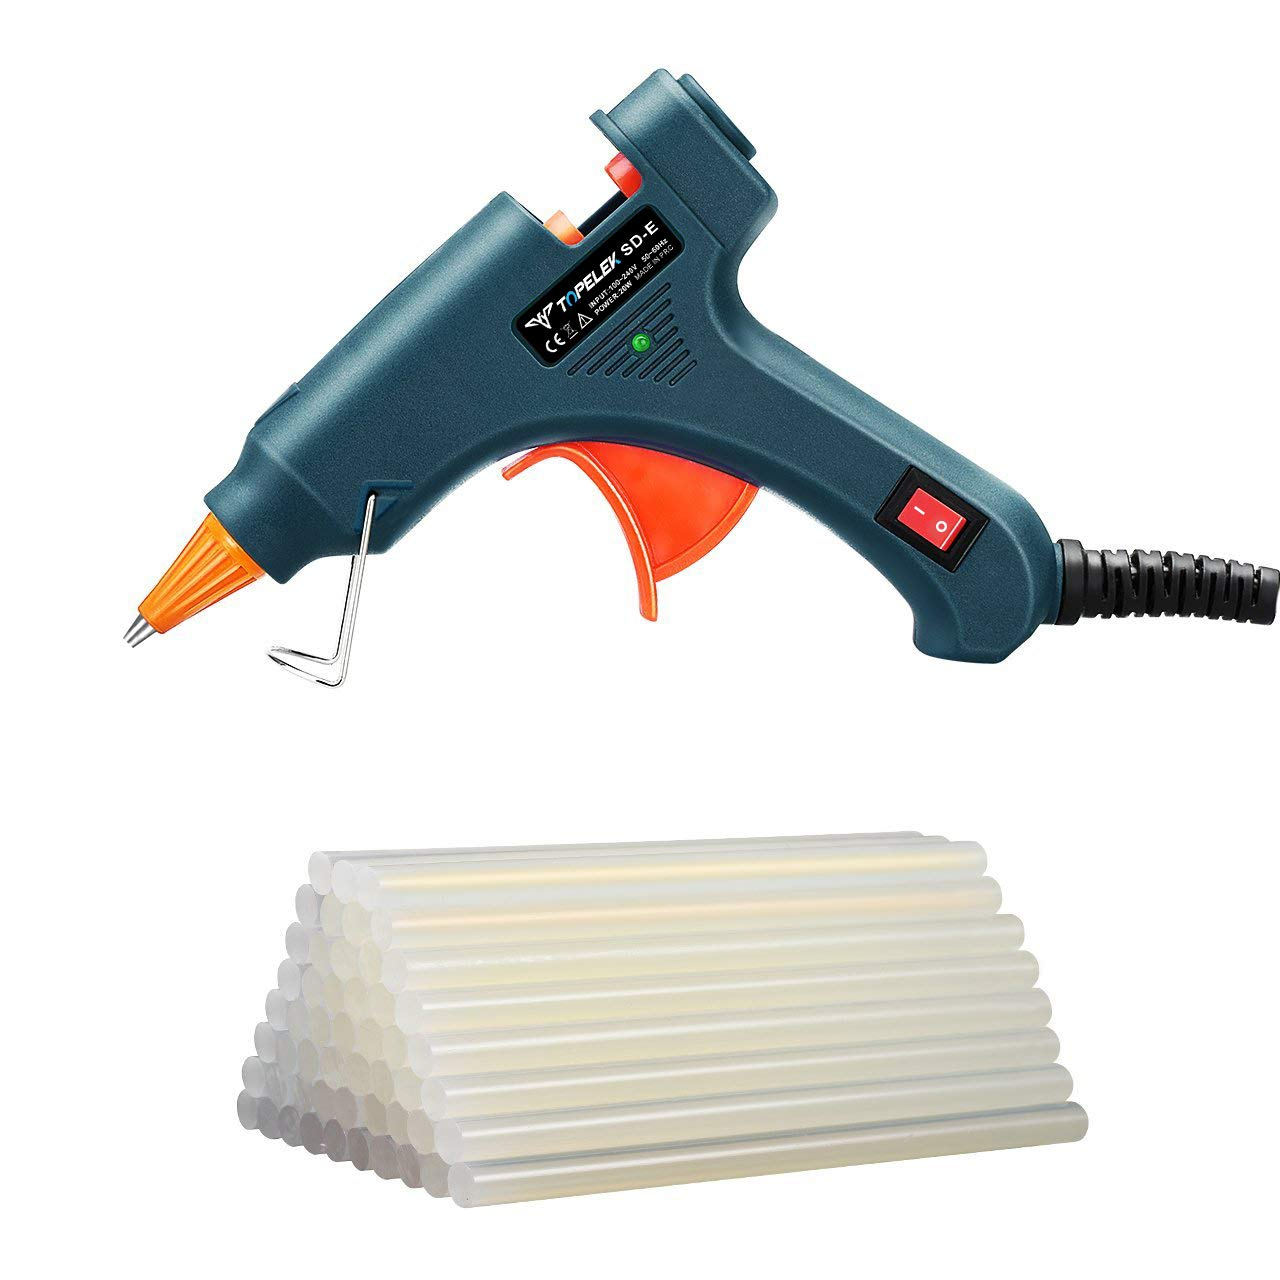 Hot Glue Gun, TopElek Mini Glue Gun Kit with 50pcs Glue Sticks, High Temperature Melting Glue Gun for DIY Small Projects, Arts and Crafts, Home Quick Repairs,Artistic Creation(20 Watts, Blue)